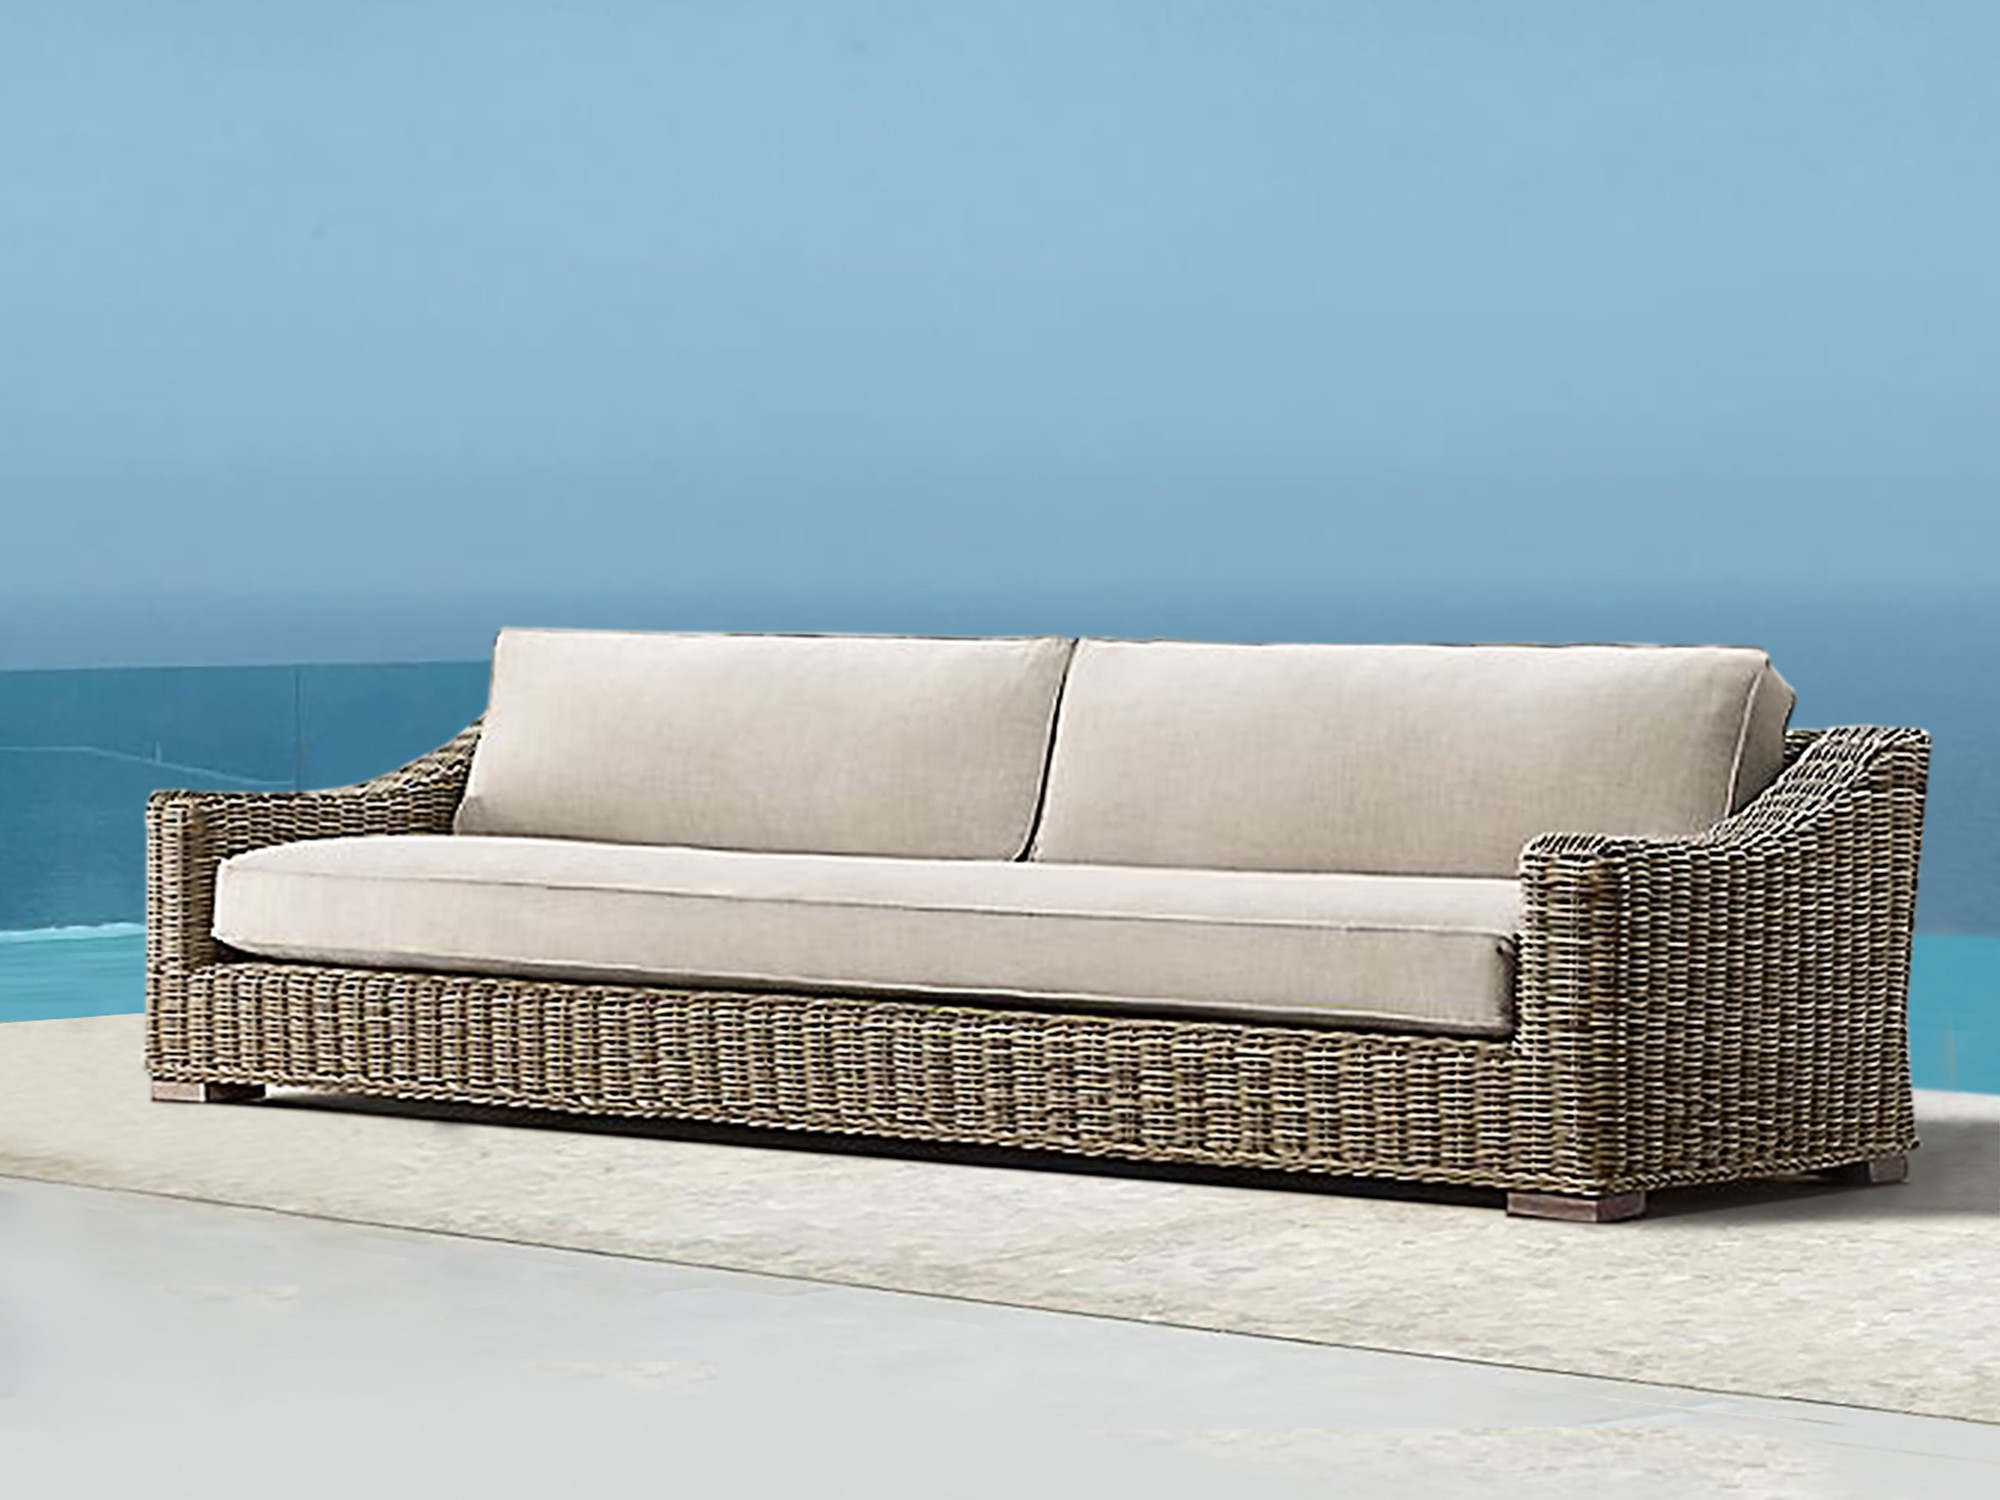 Barcelona Luxury Bespoke Outdoor Large Sofa   Hadley Rose Intended For Fancy Sofas (View 14 of 15)